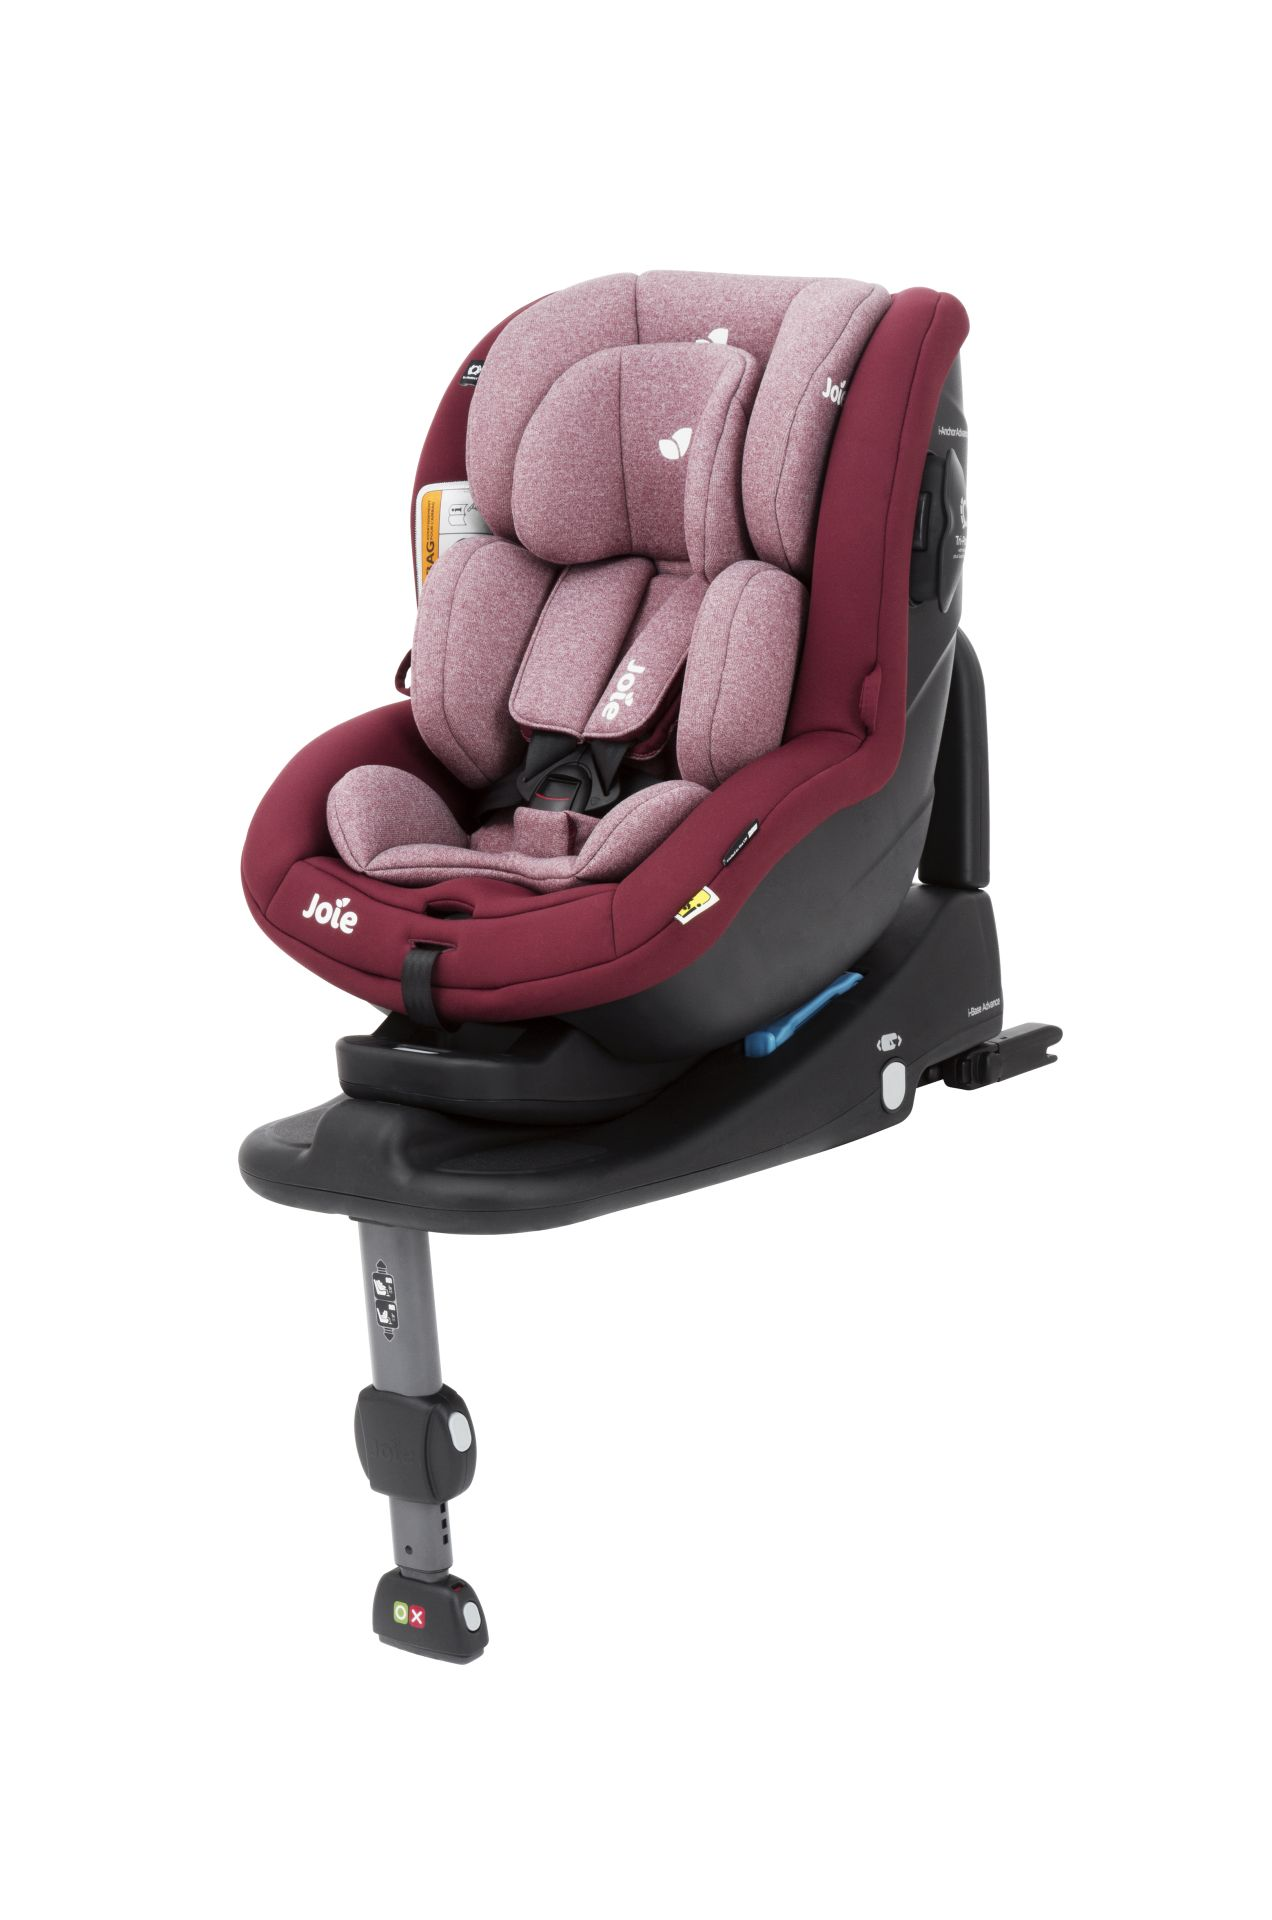 joie car seat i anchor 2017 merlot buy at kidsroom car seats. Black Bedroom Furniture Sets. Home Design Ideas